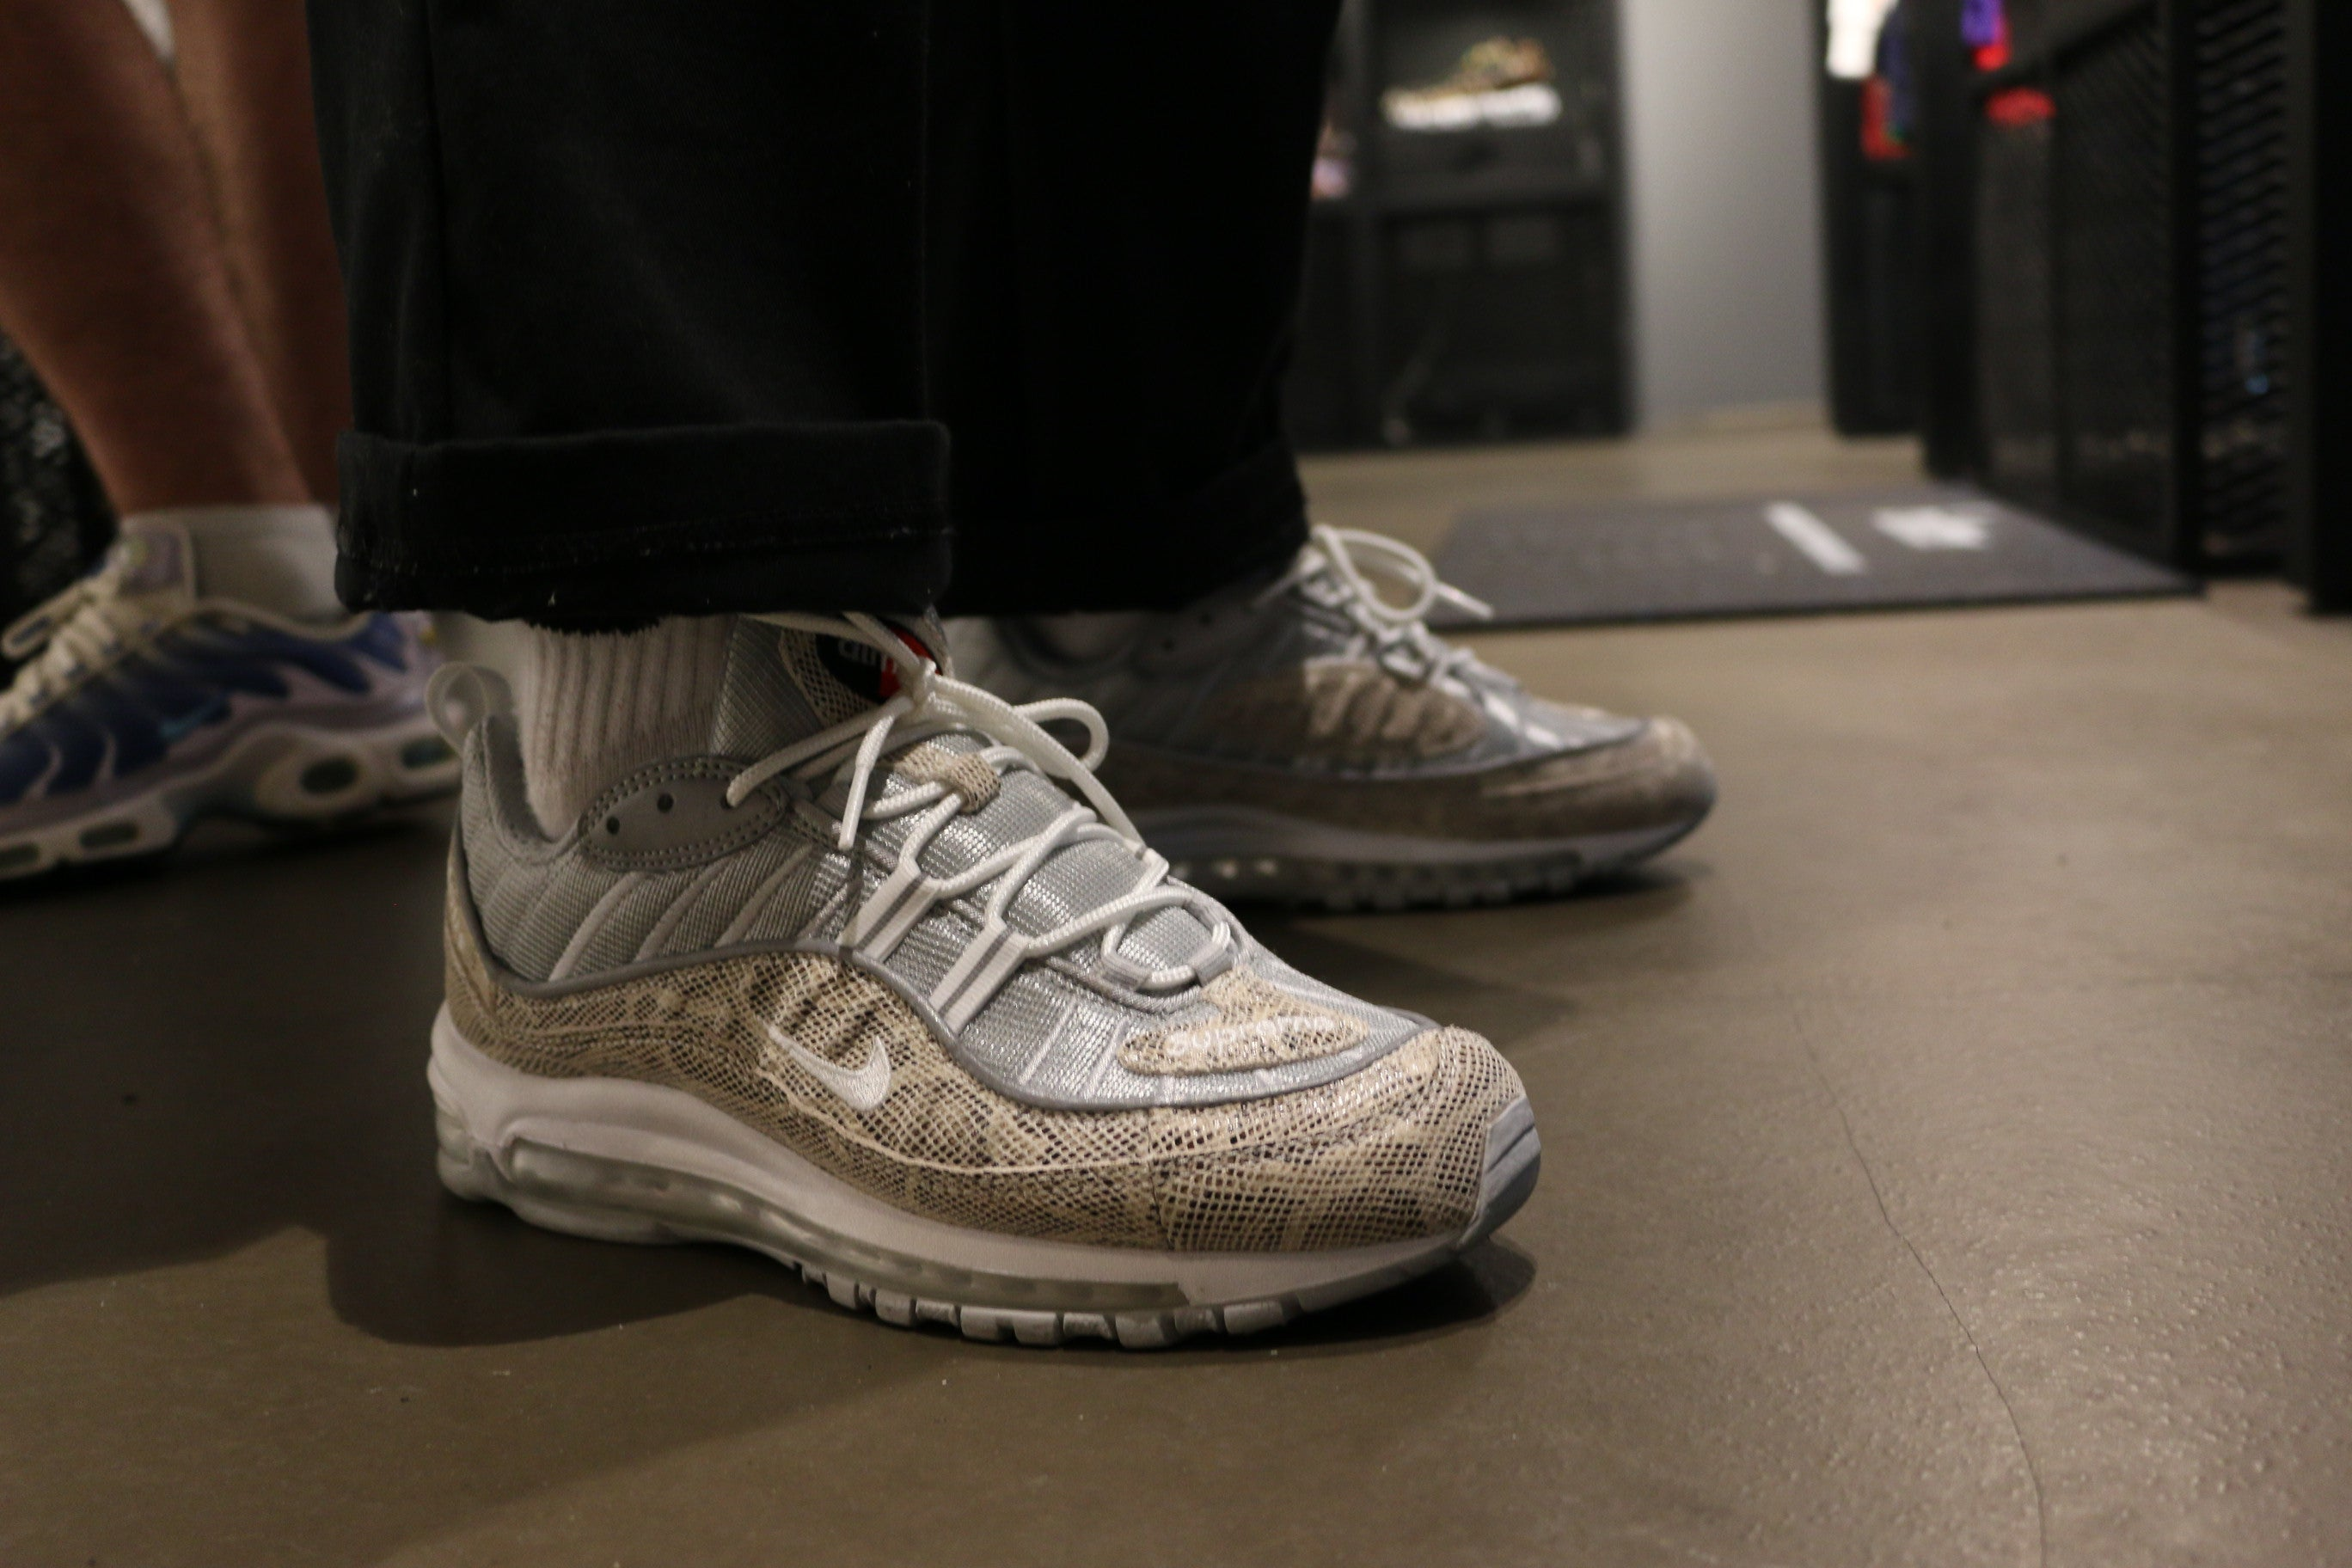 AIR MAX DAY AT BUTTER: CHECK OUT THE BEST KICKS WORN – Butter